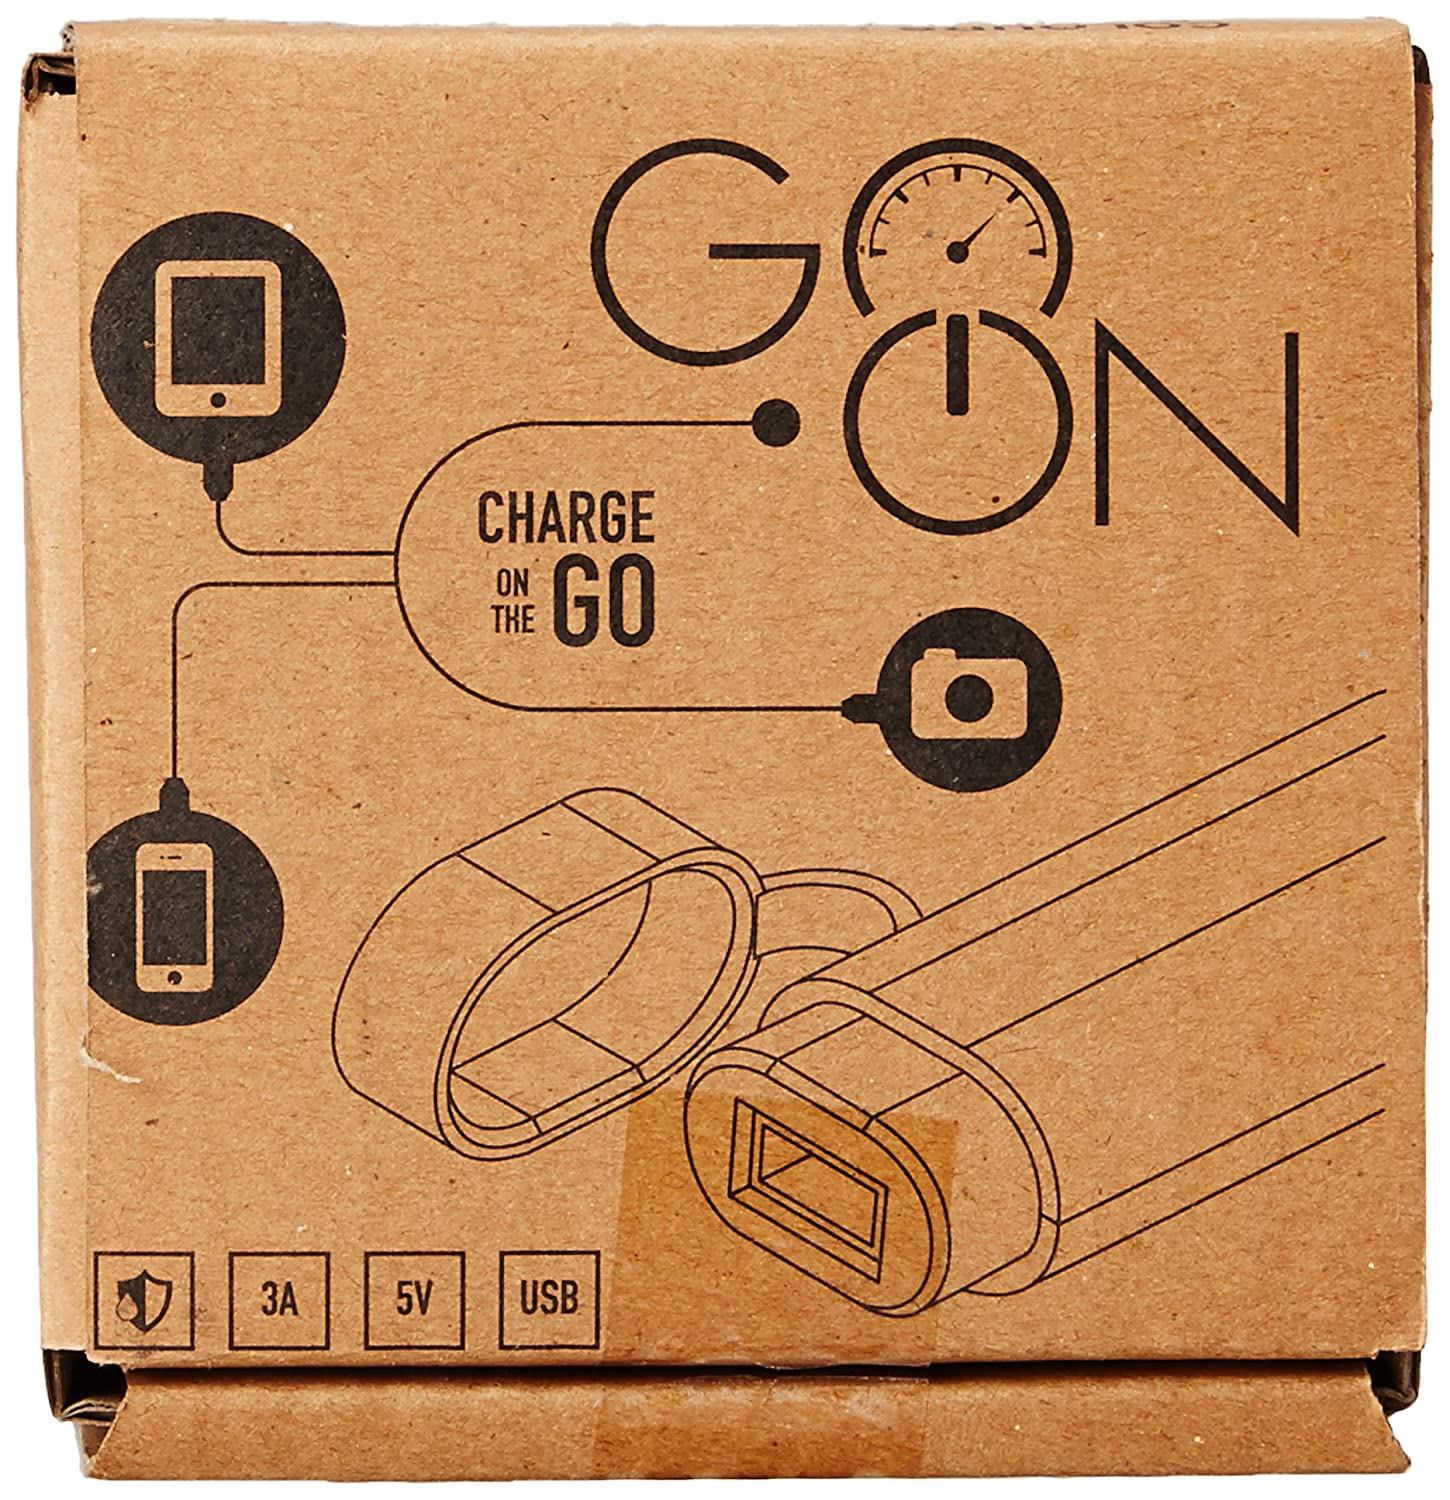 Cingularity Cg 102 Go On G1 Usb Mobile Charger For Bikes And Circuit Diagram Scooters Black Car Motorbike